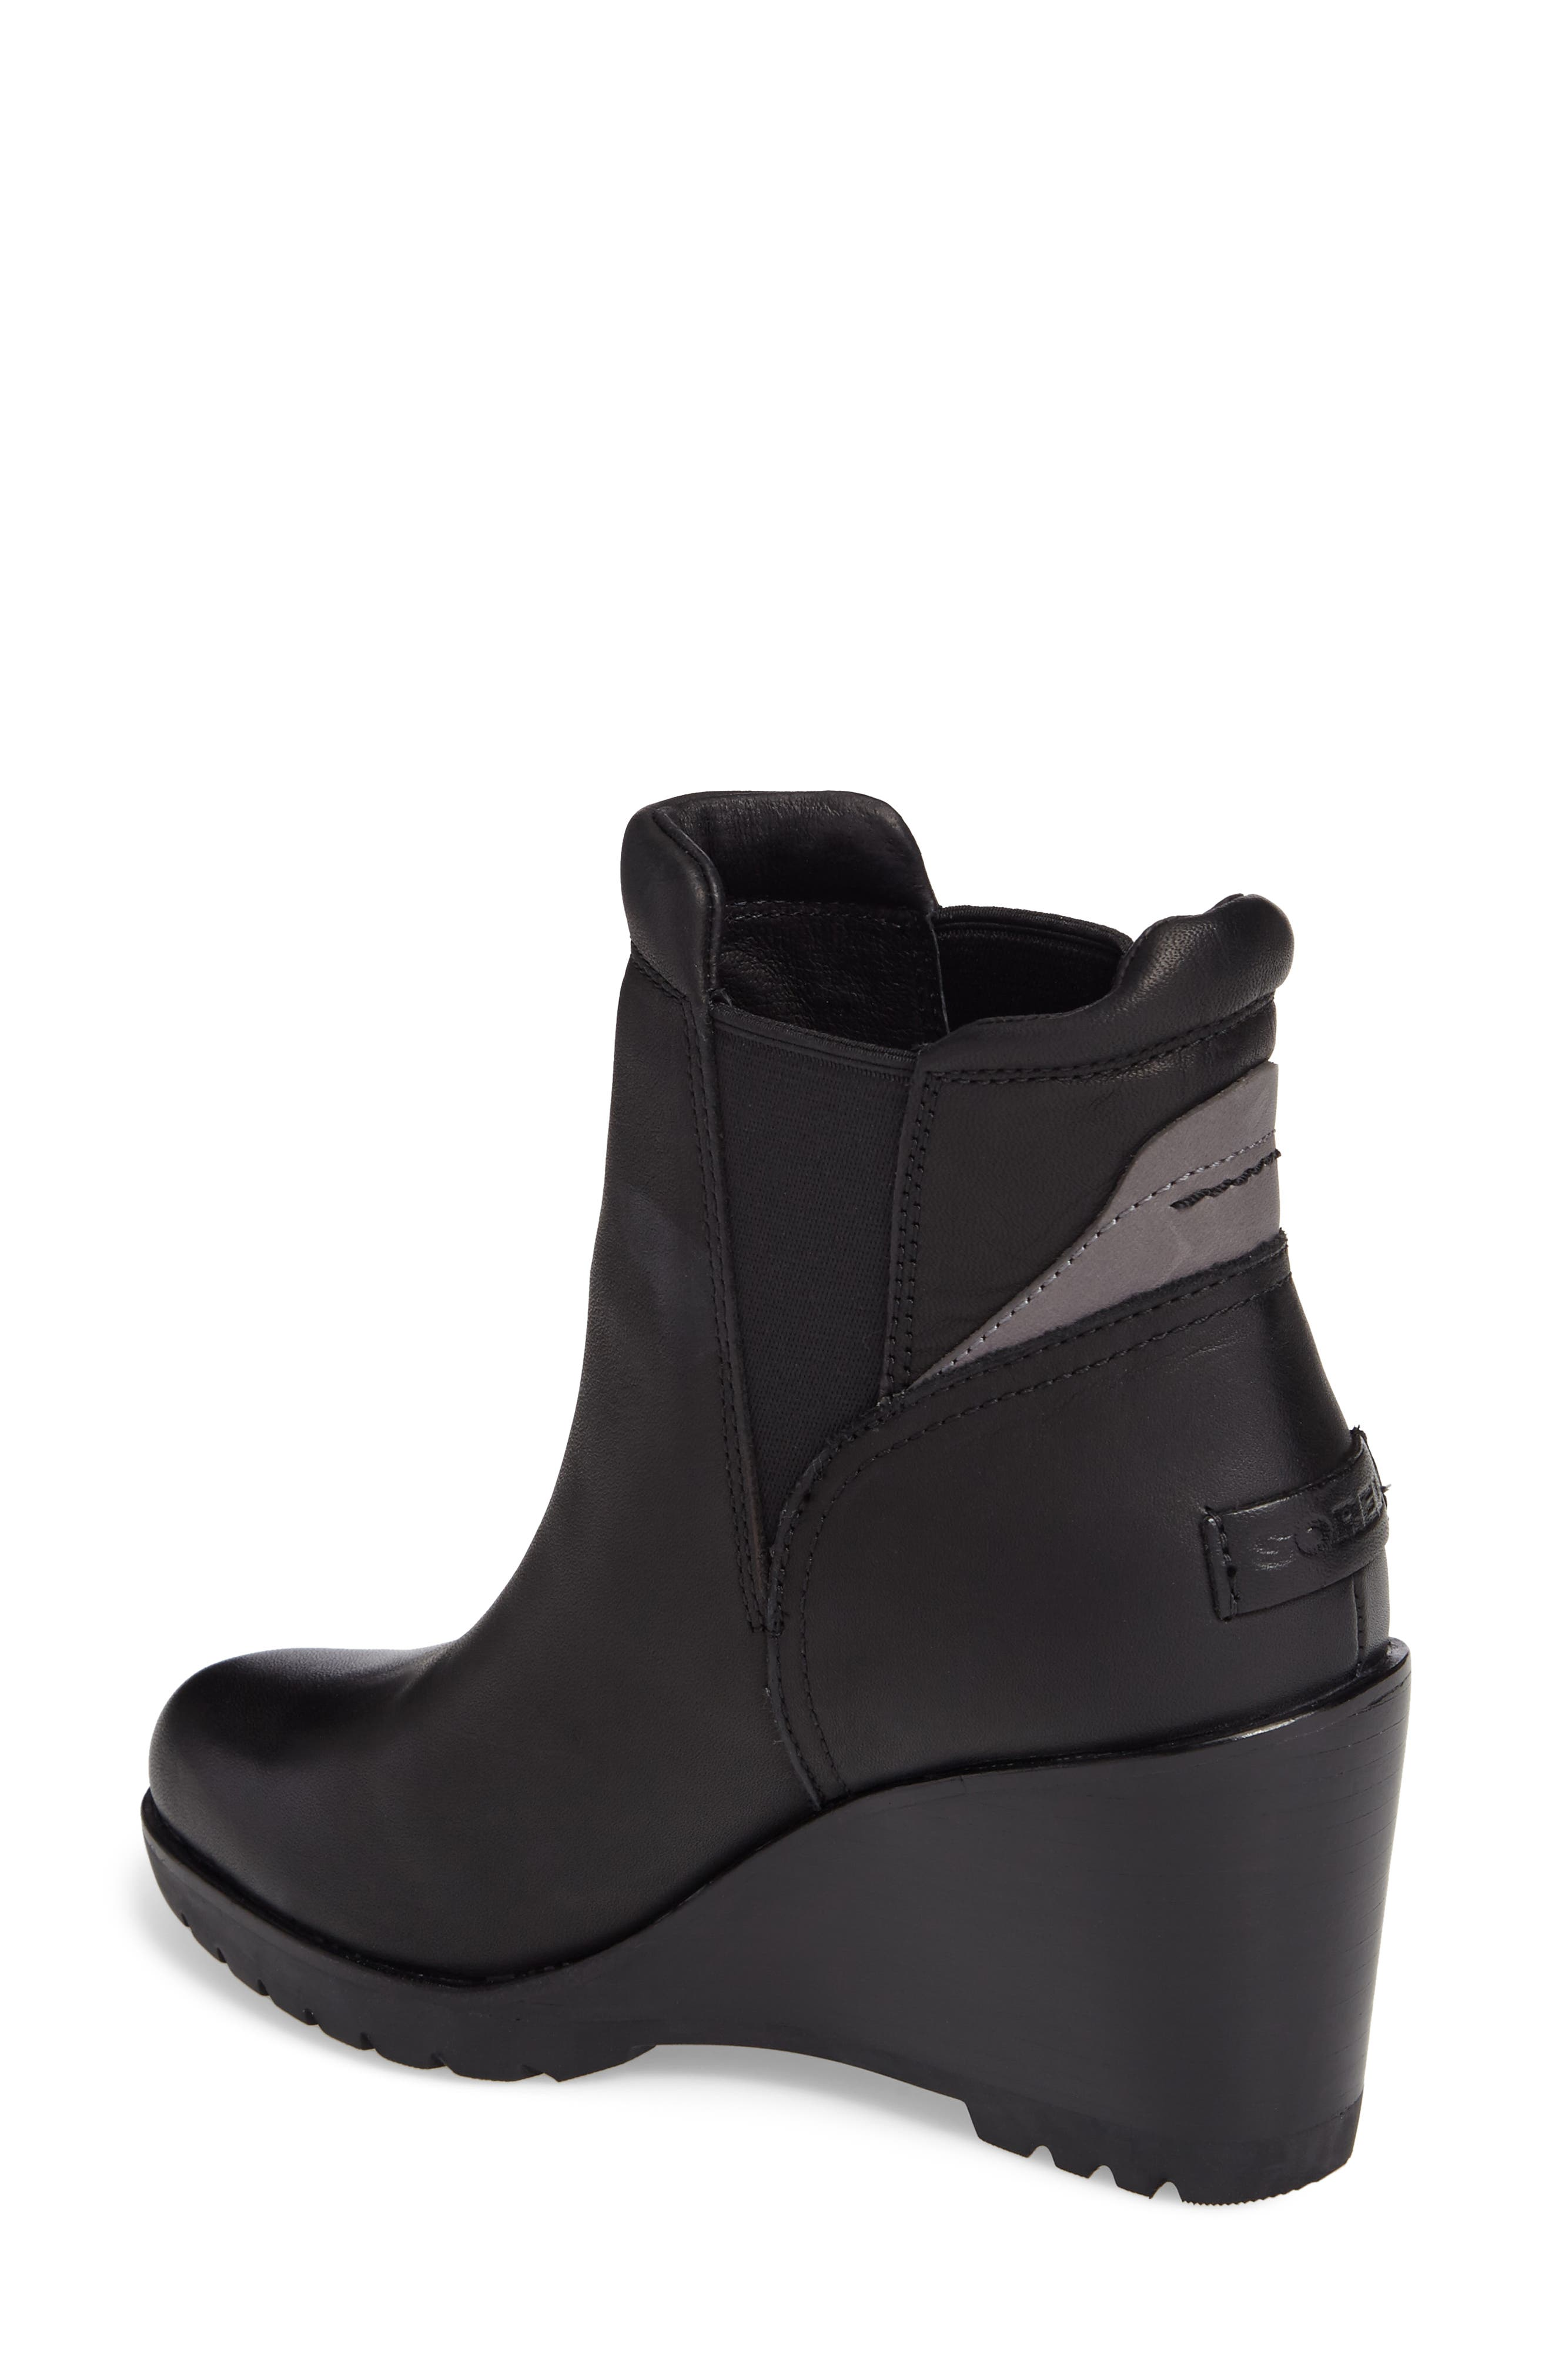 After Hours Chelsea Boot,                             Alternate thumbnail 7, color,